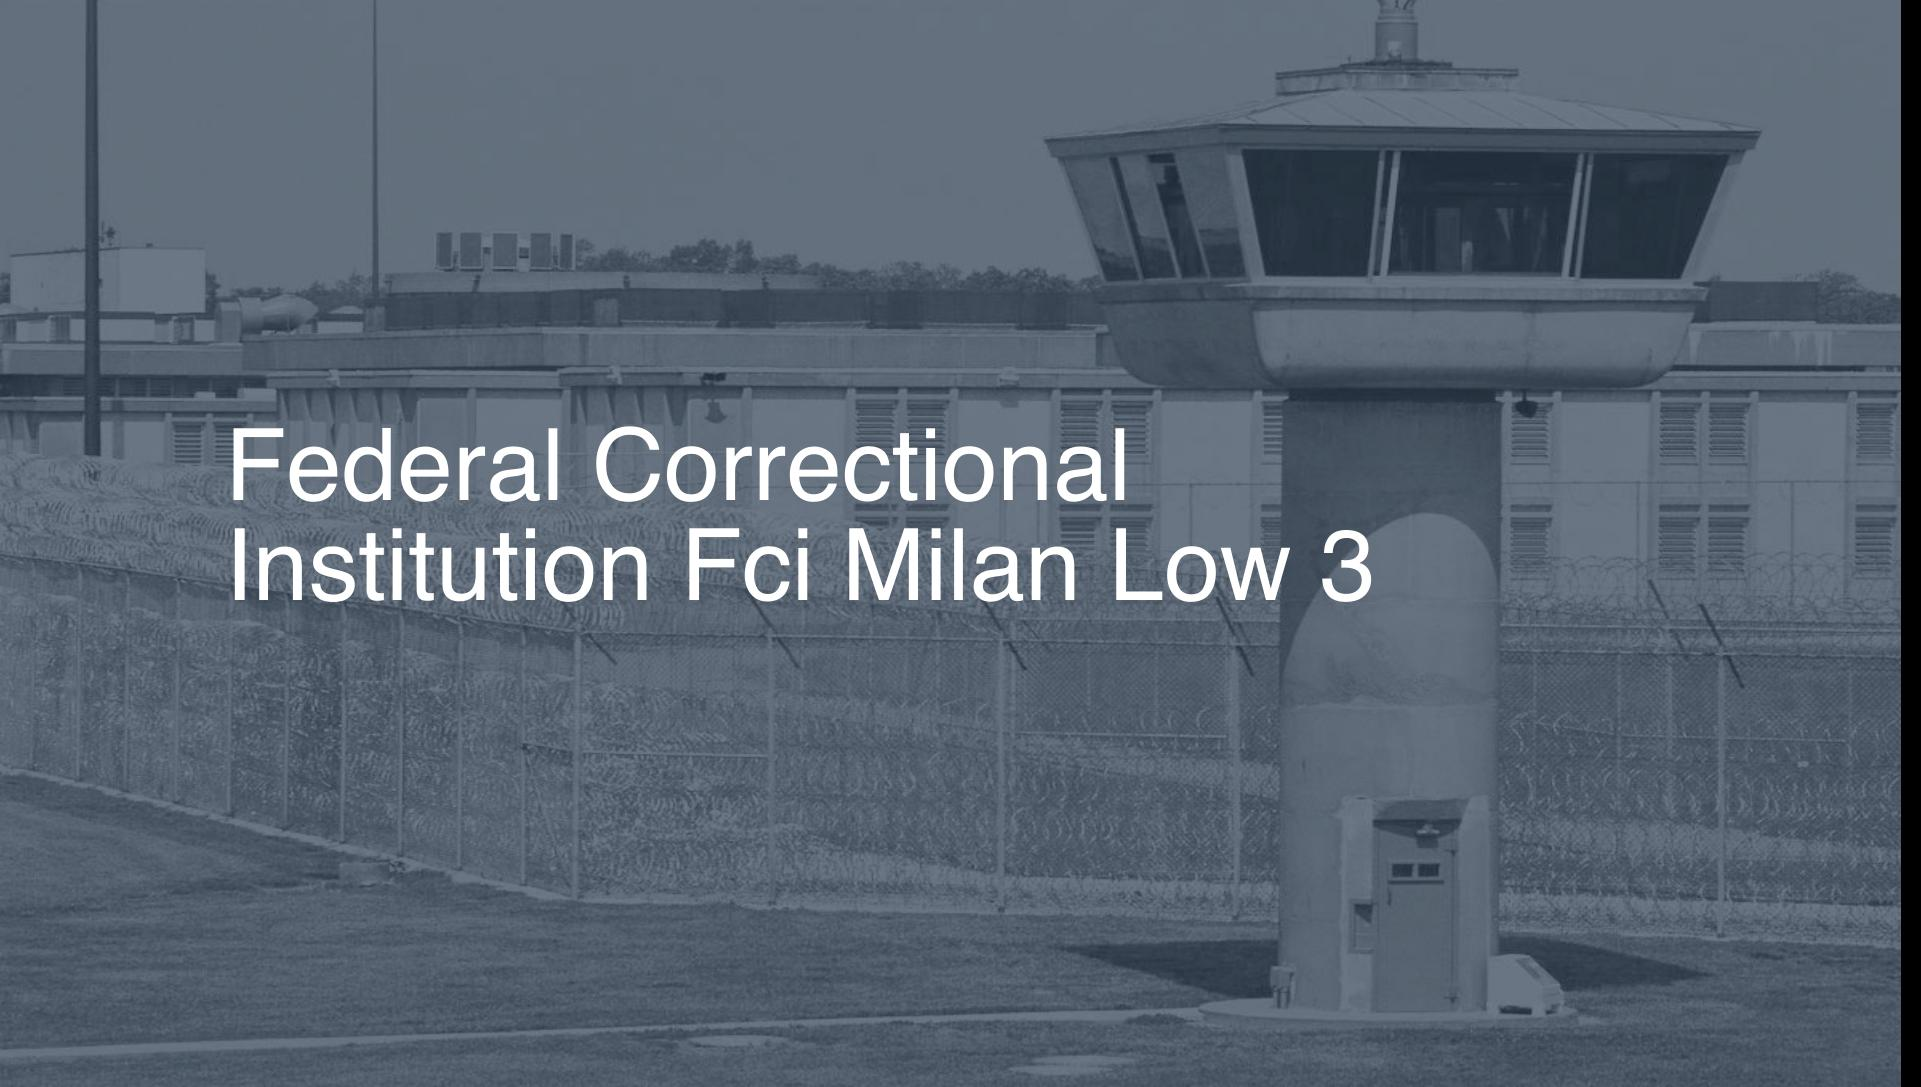 Federal Correctional Institution (FCI) - Milan Low correctional facility picture